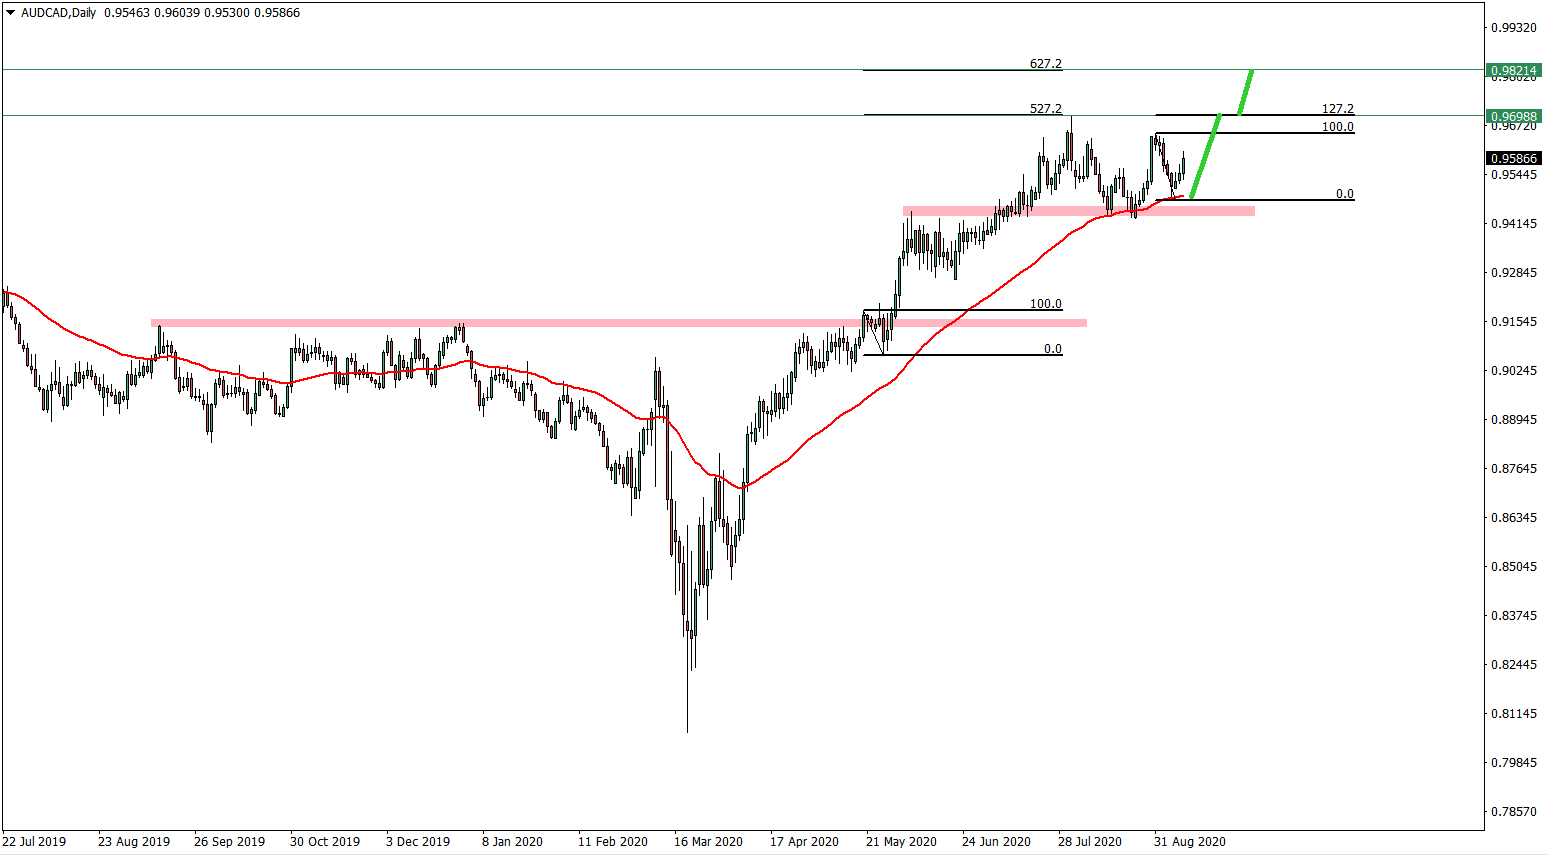 AUDCAD daily chart September 9th 2020